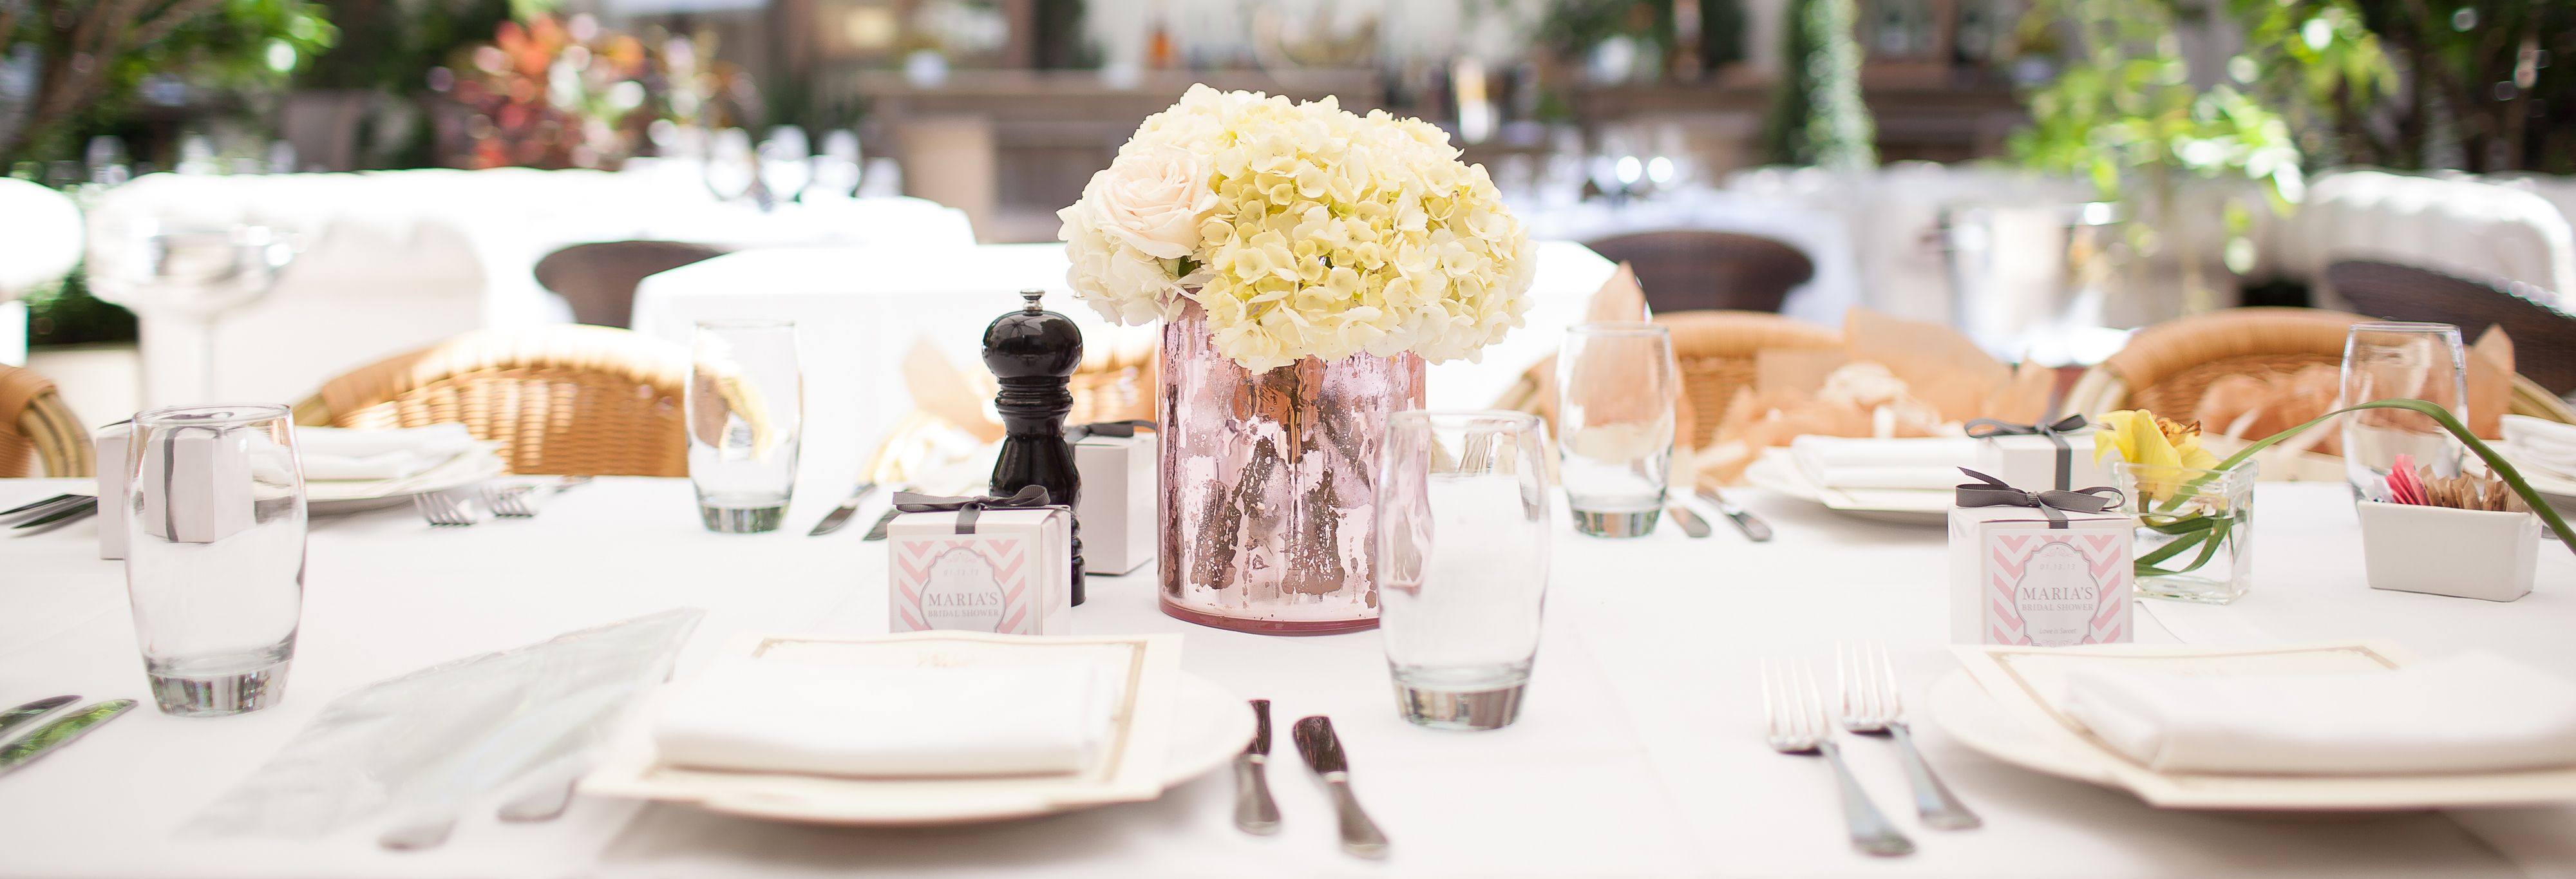 Bridal showers and bachelorette parties ultimate bridesmaid for Champagne brunch bridal shower